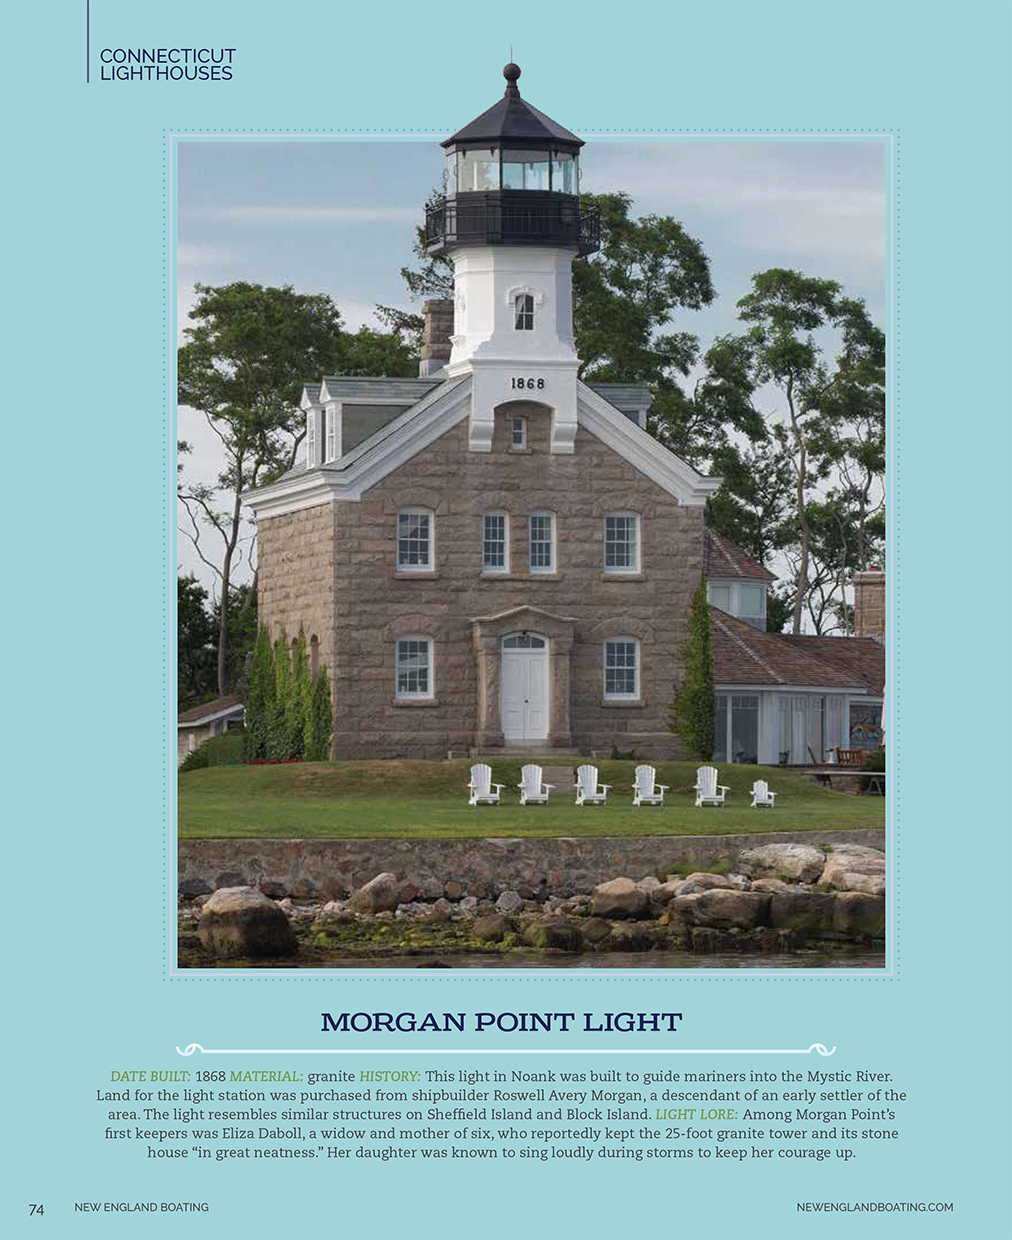 Morgan-Point-Light-New-England-Boating-Caryn-B-Davis